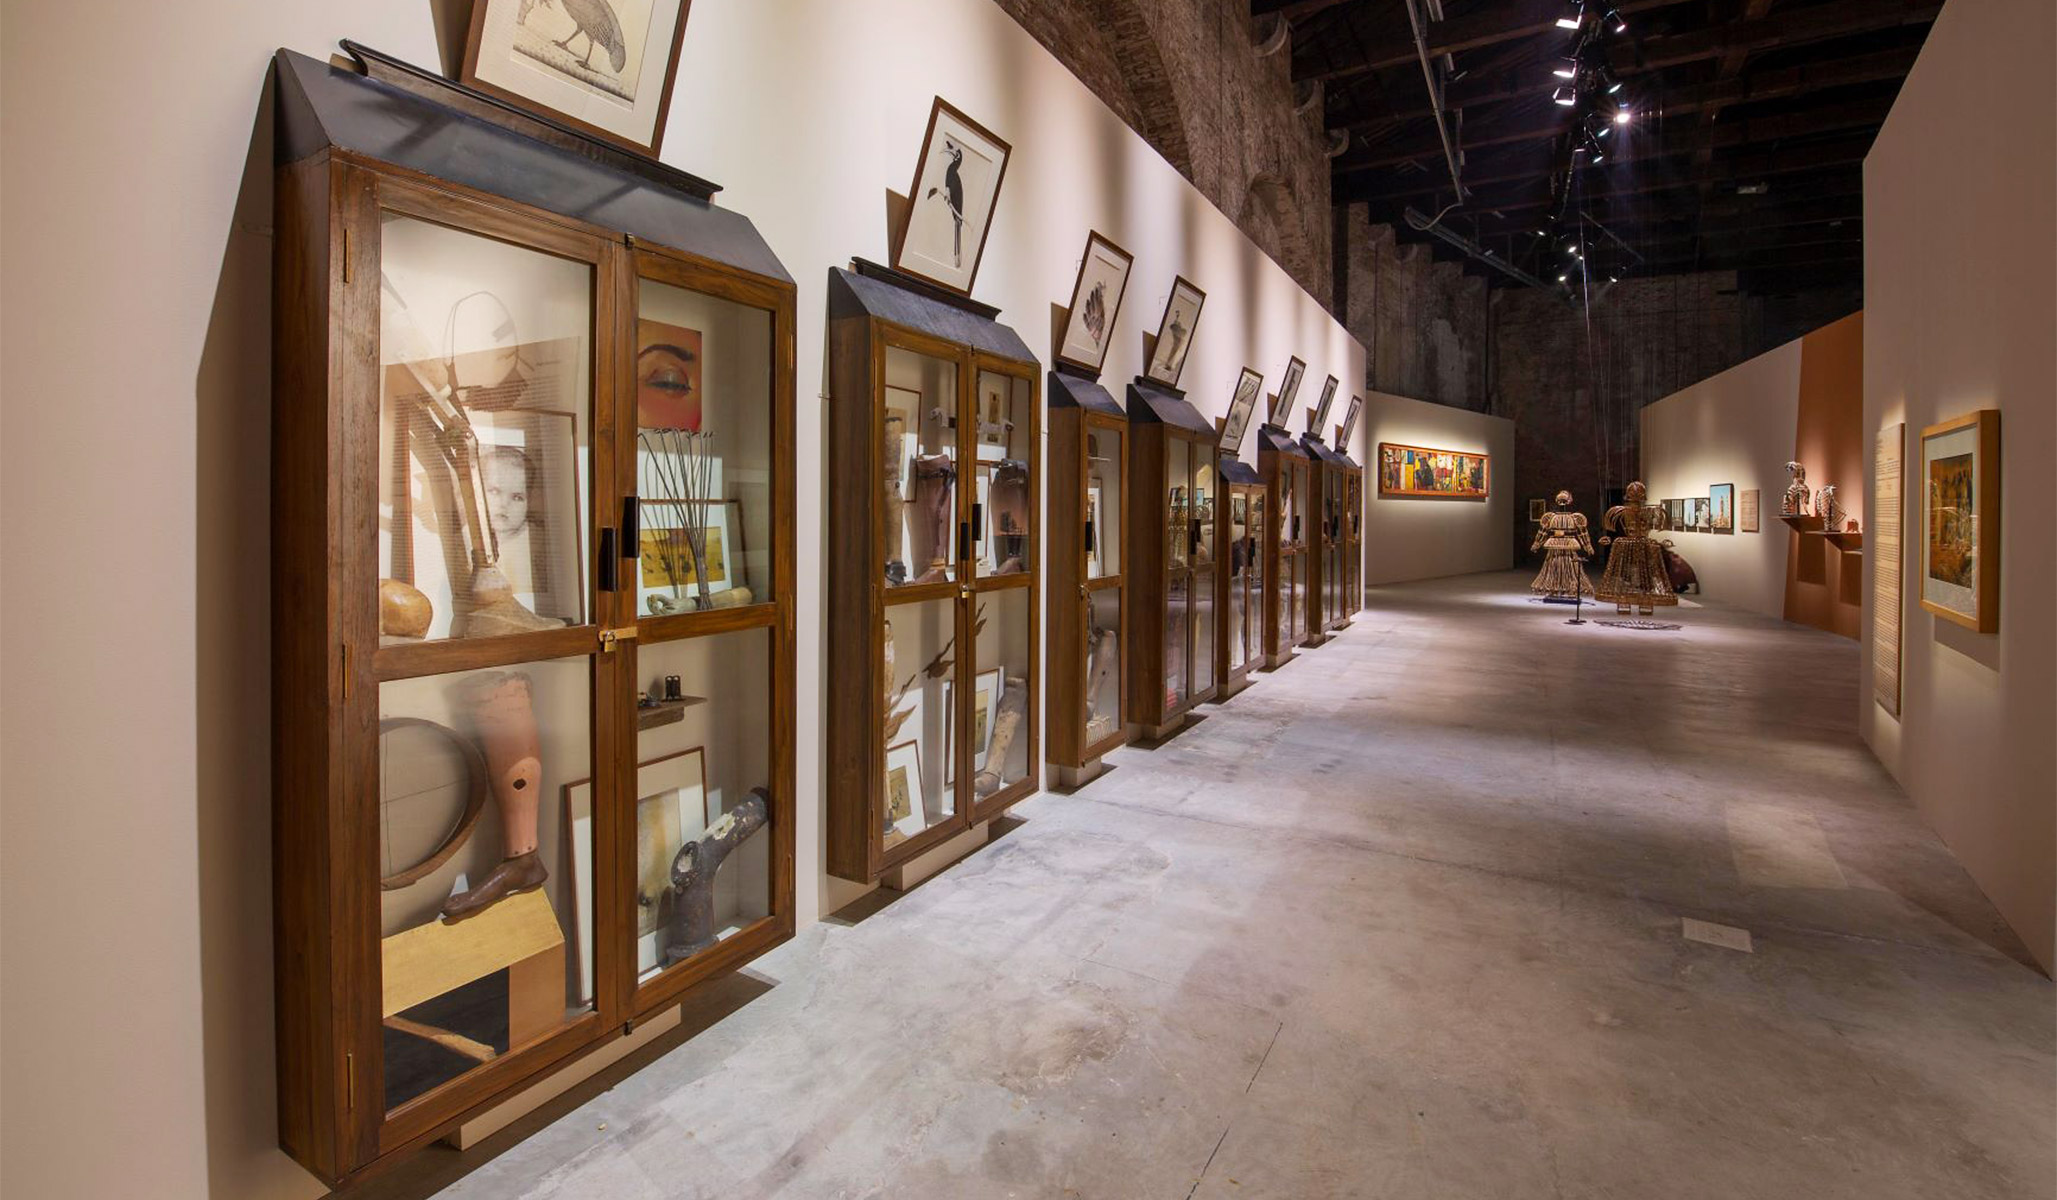 Modern India Comes to the Venice Biennale